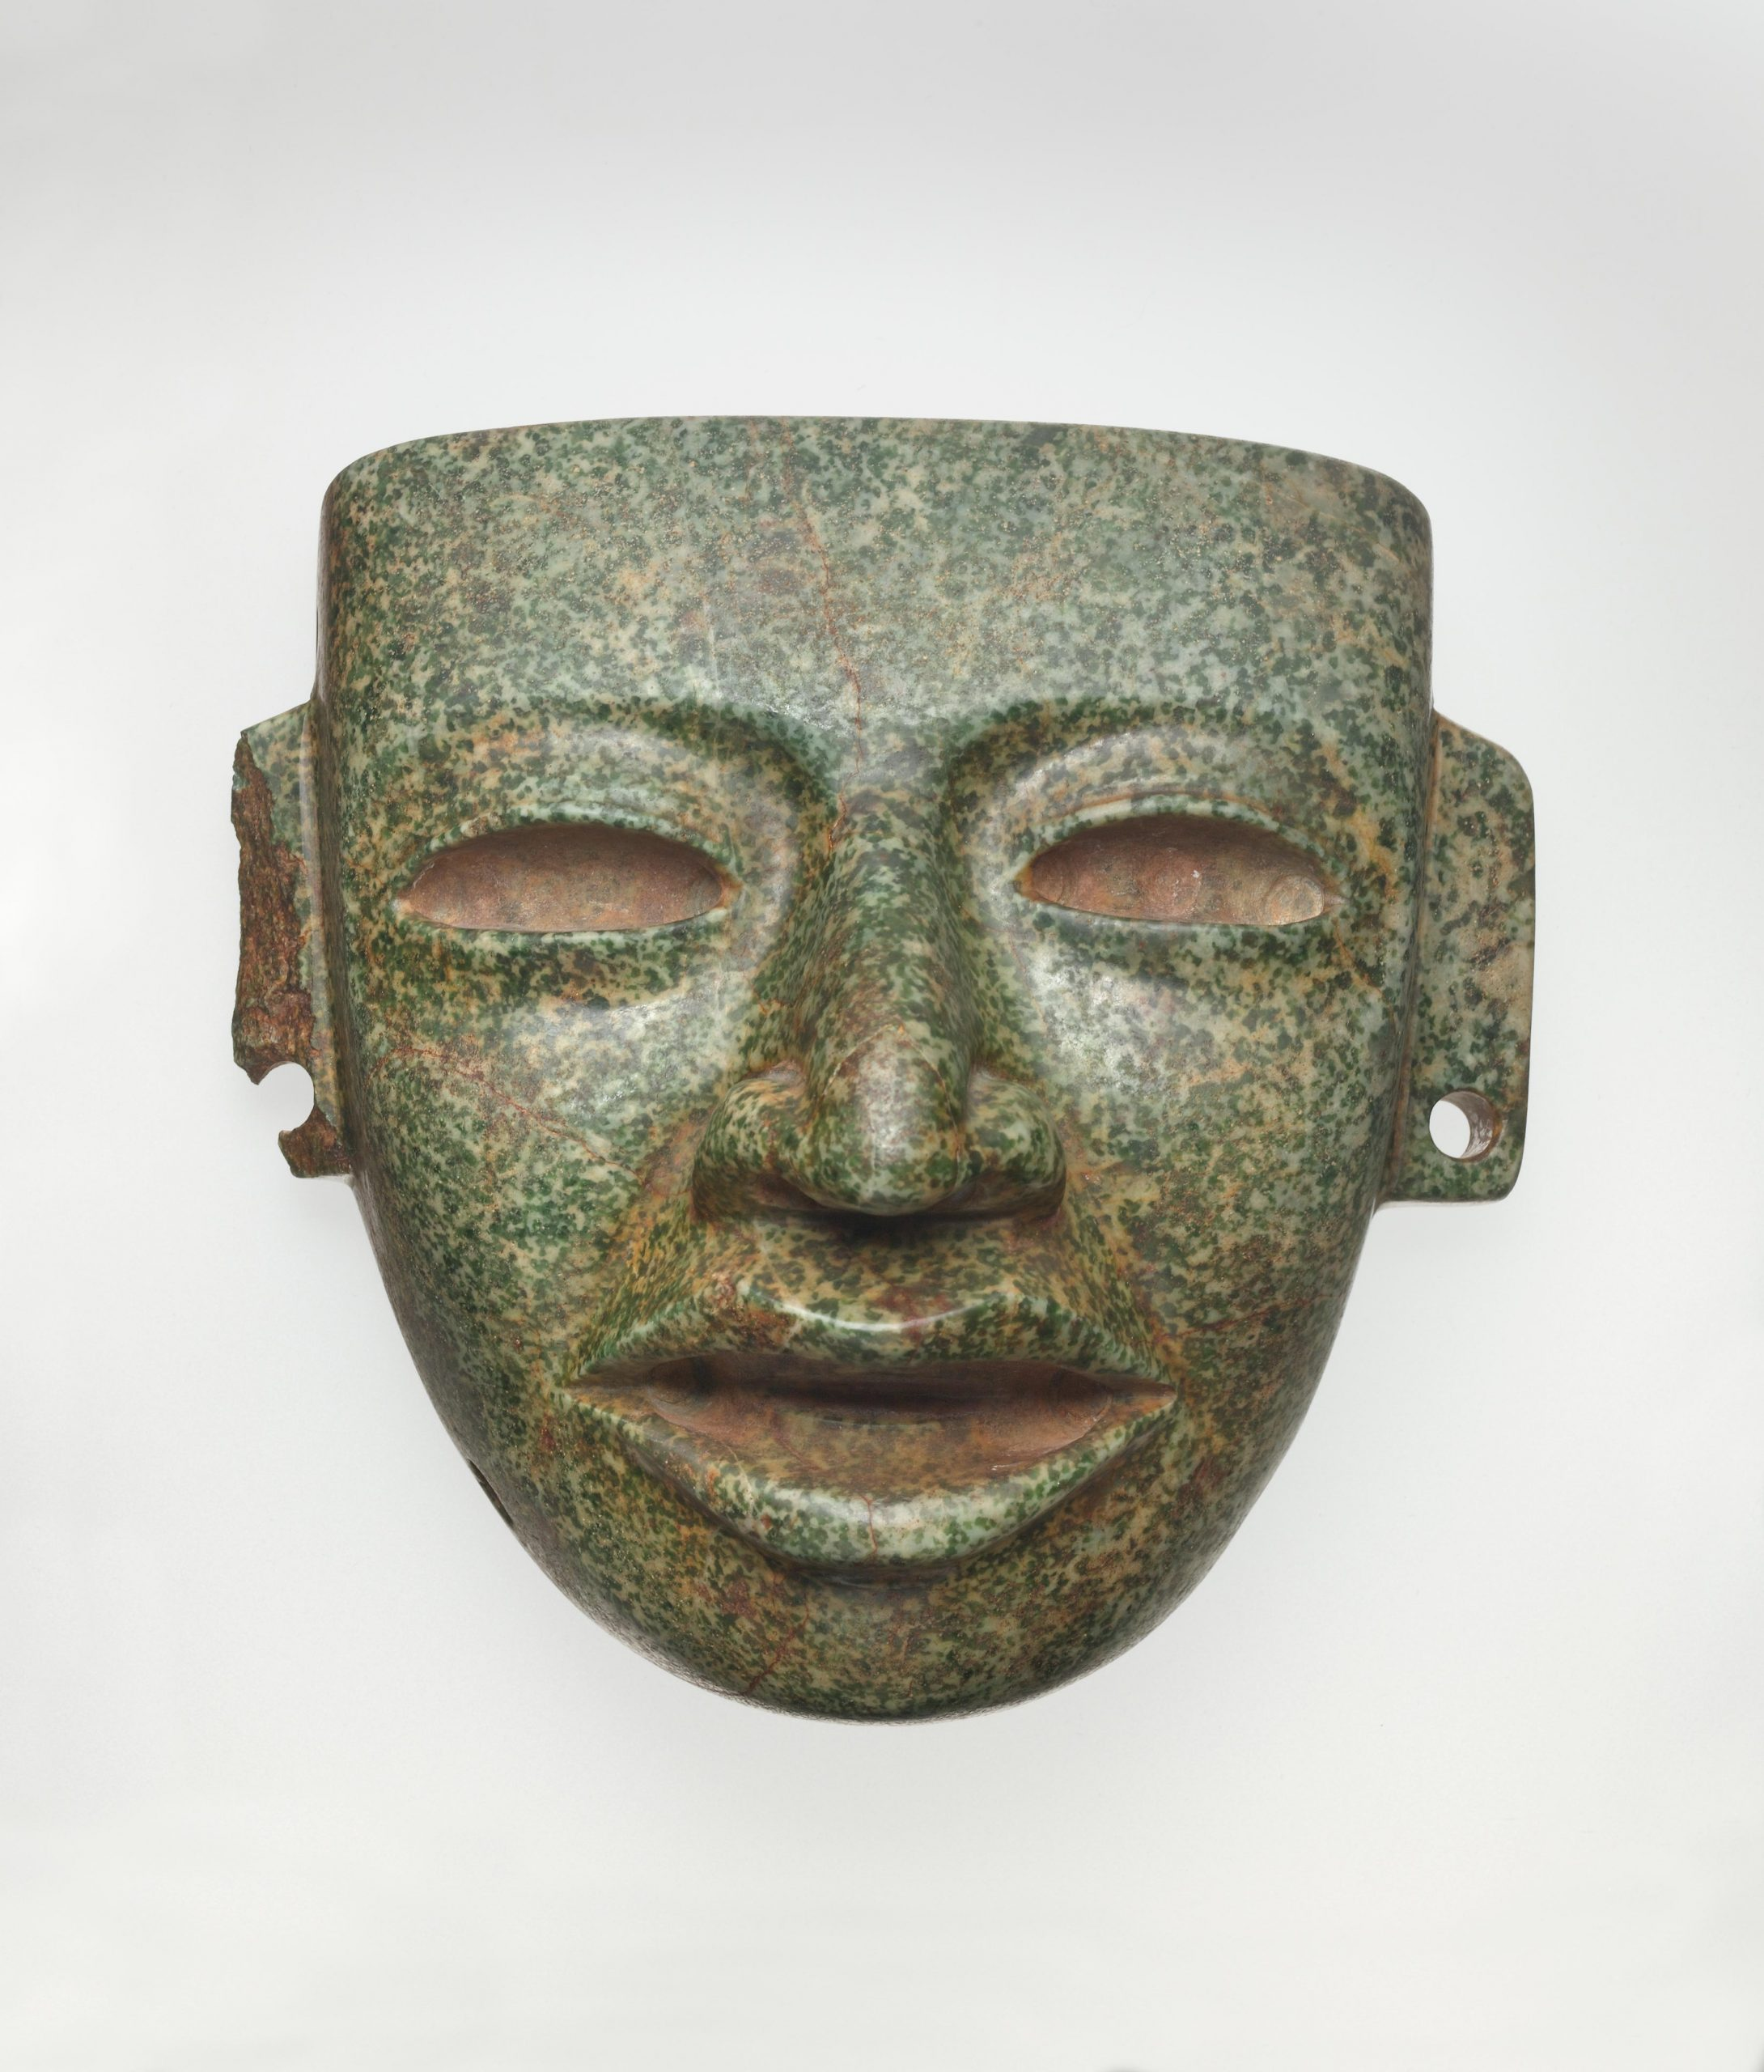 Mottled green stone face mask with open mouth, hollowed eyes, and pierced ears.